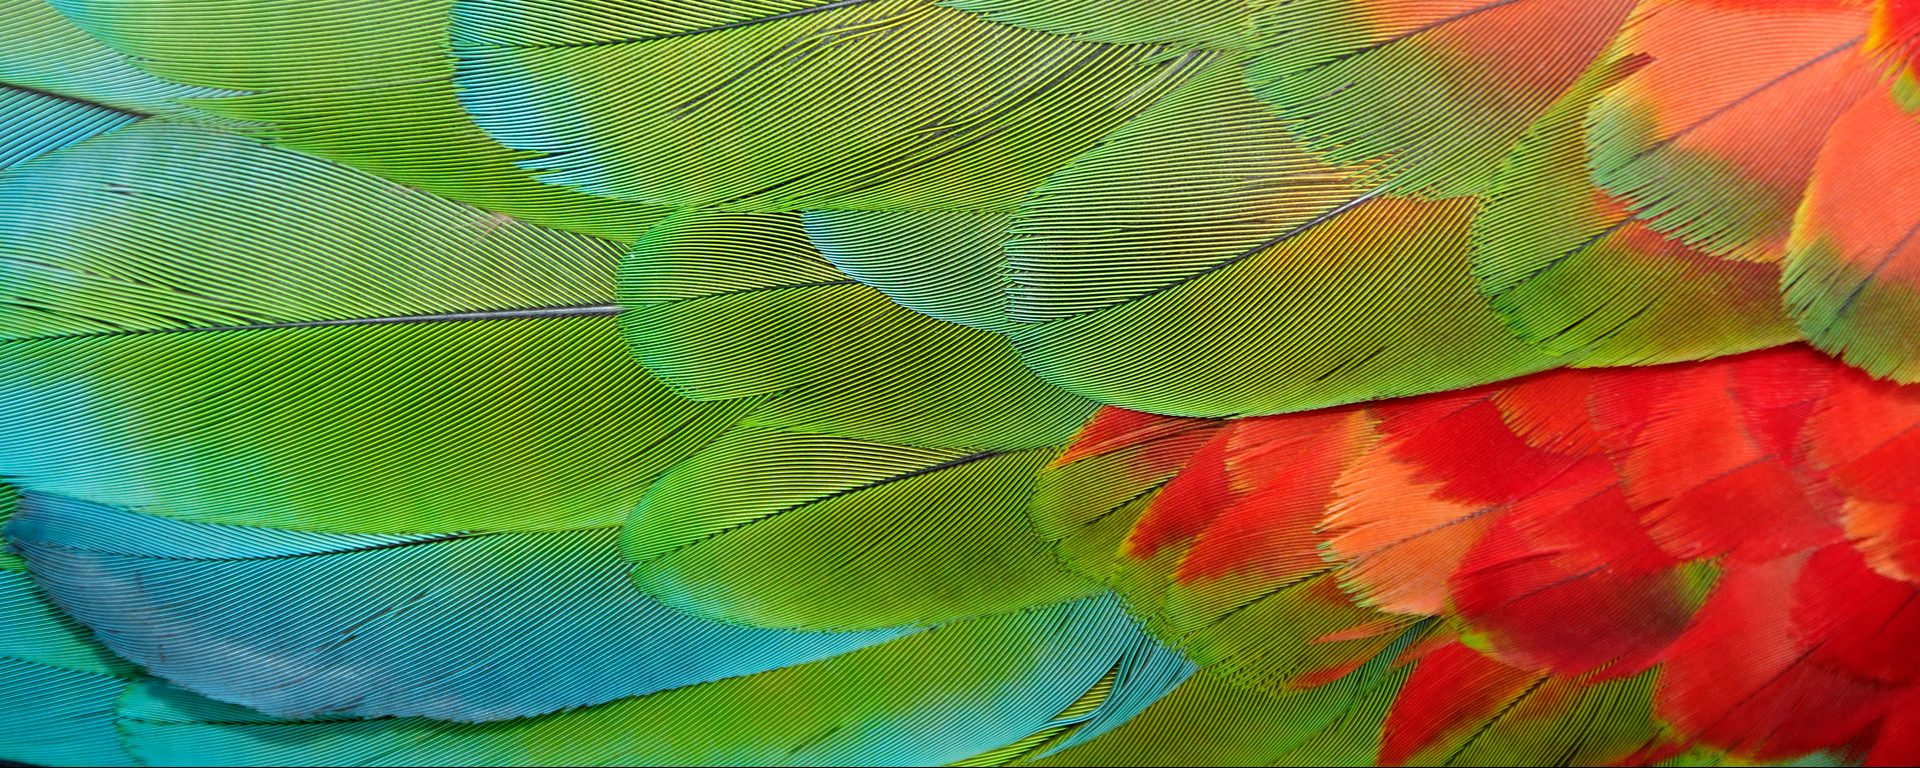 Parrot feathers at Bocas del Toro near Isla Colon, Panama